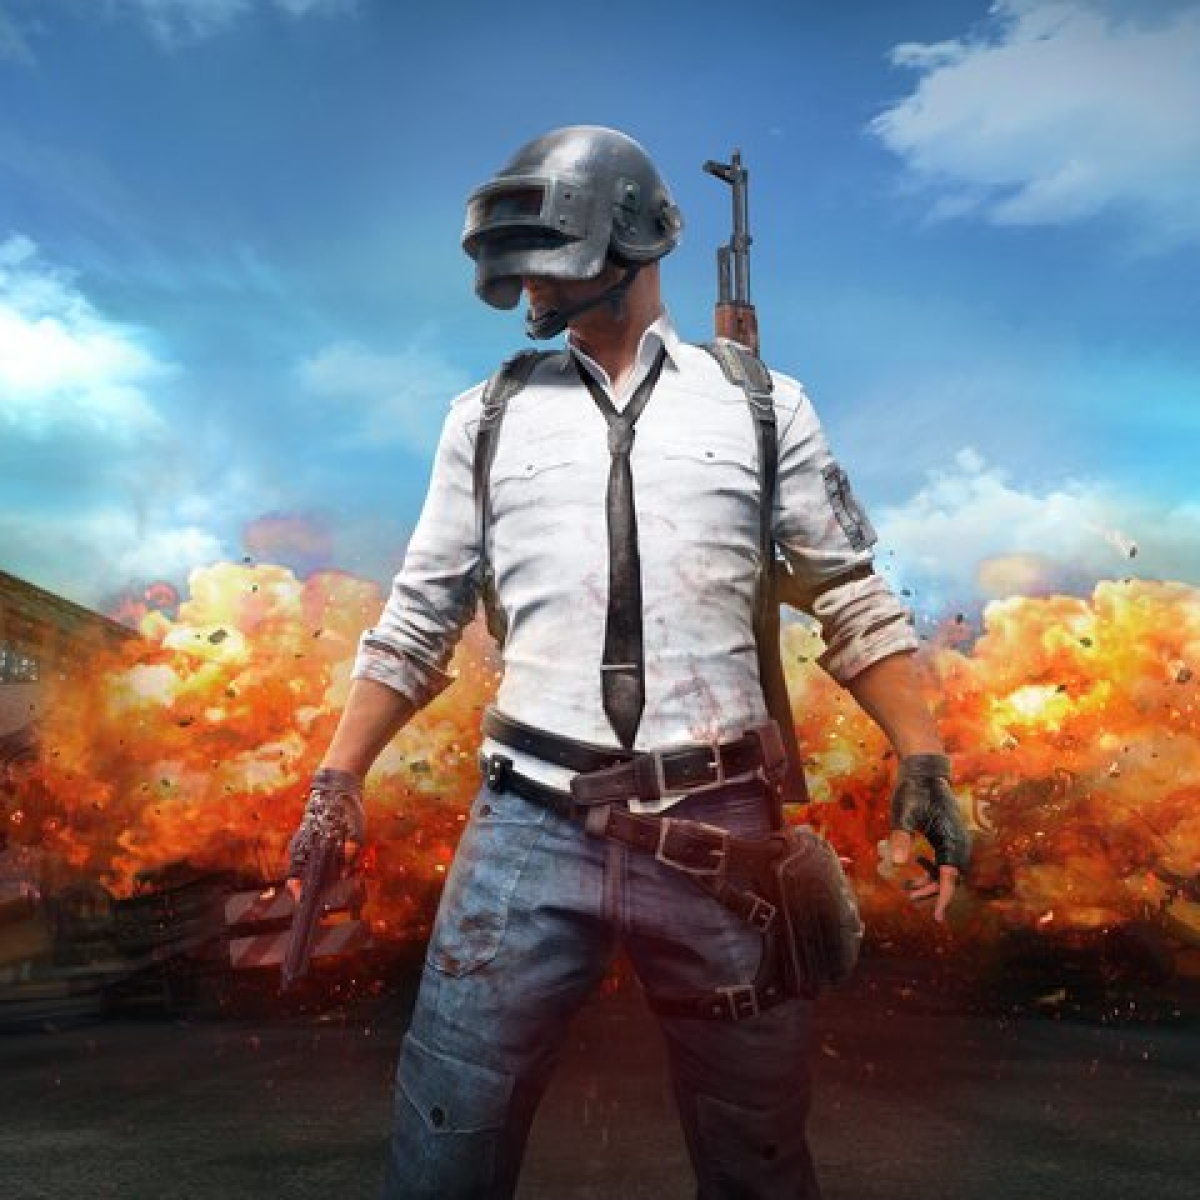 No 'chicken dinner' for Punjab boy who spent father's 16 lakhs on PUBG